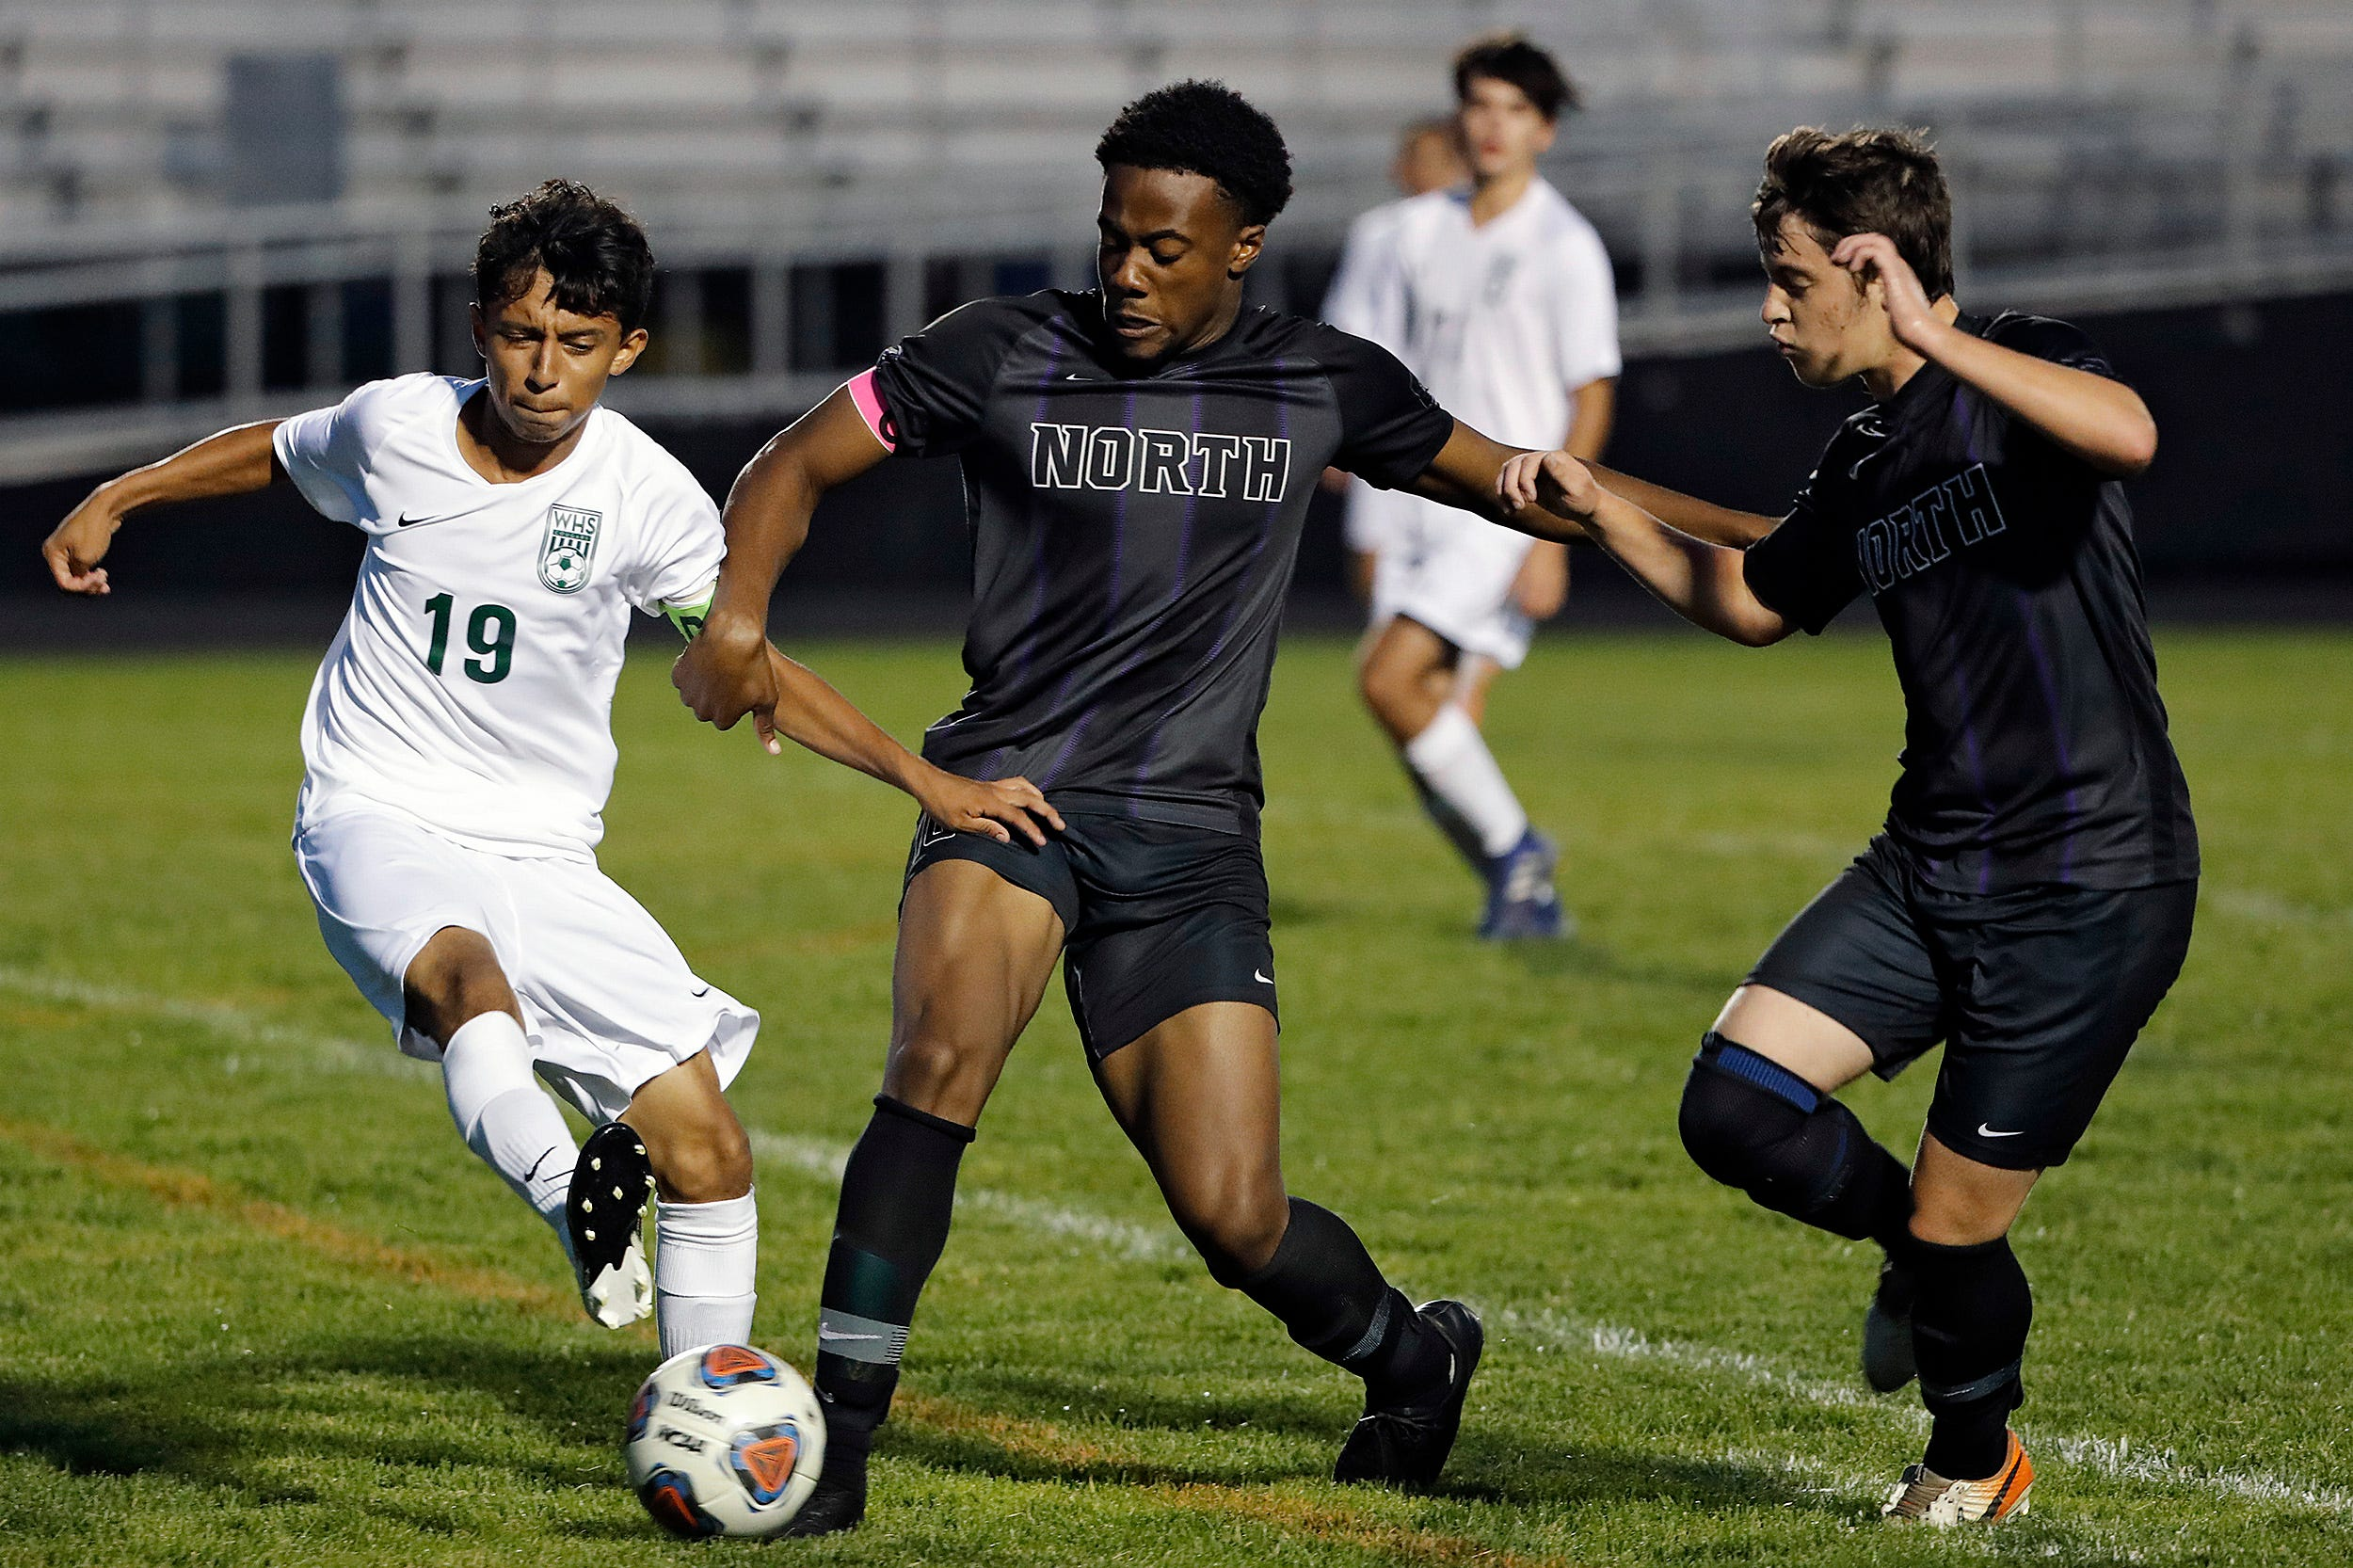 Pickerington North's Uche Odemena (10) battles for the ball with Westland's Pato Rebollar (19) during the 1st half of their game at Pickerington High School North on Sept. 22, 2020.